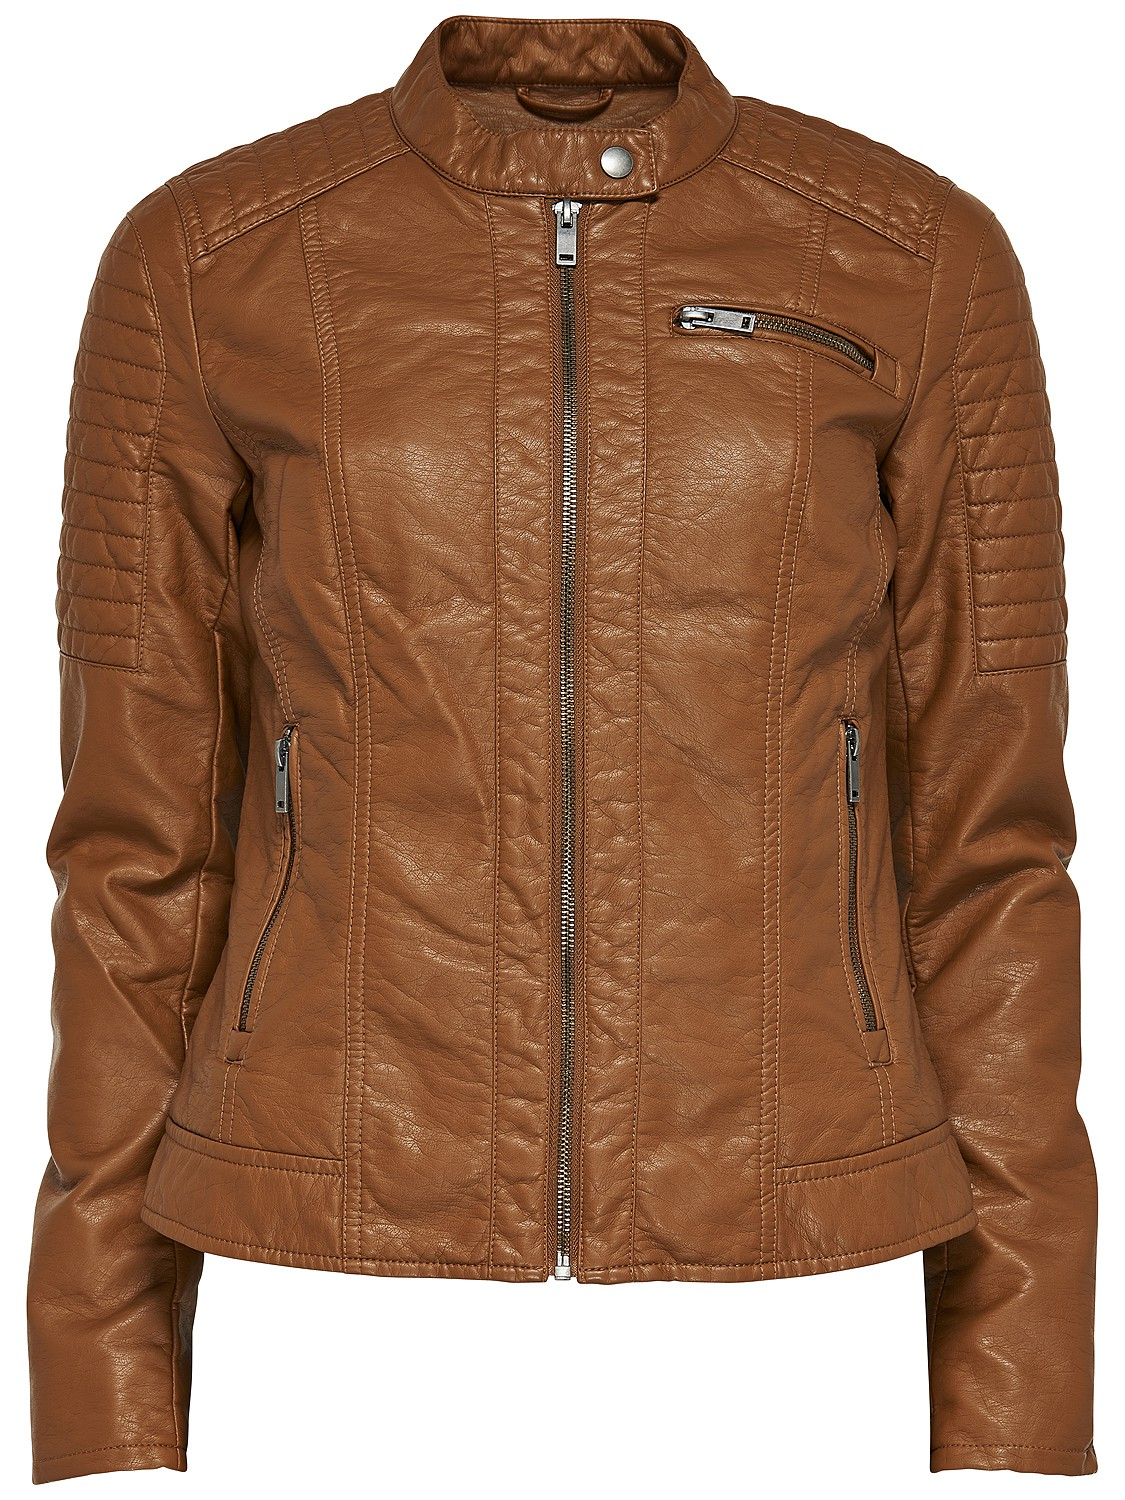 Womens pu leather jacket products are most popular in North America, Eastern Europe, and Western Europe. You can ensure product safety by selecting from certified suppliers, including with Other, with ISO, and with BSCI certification.